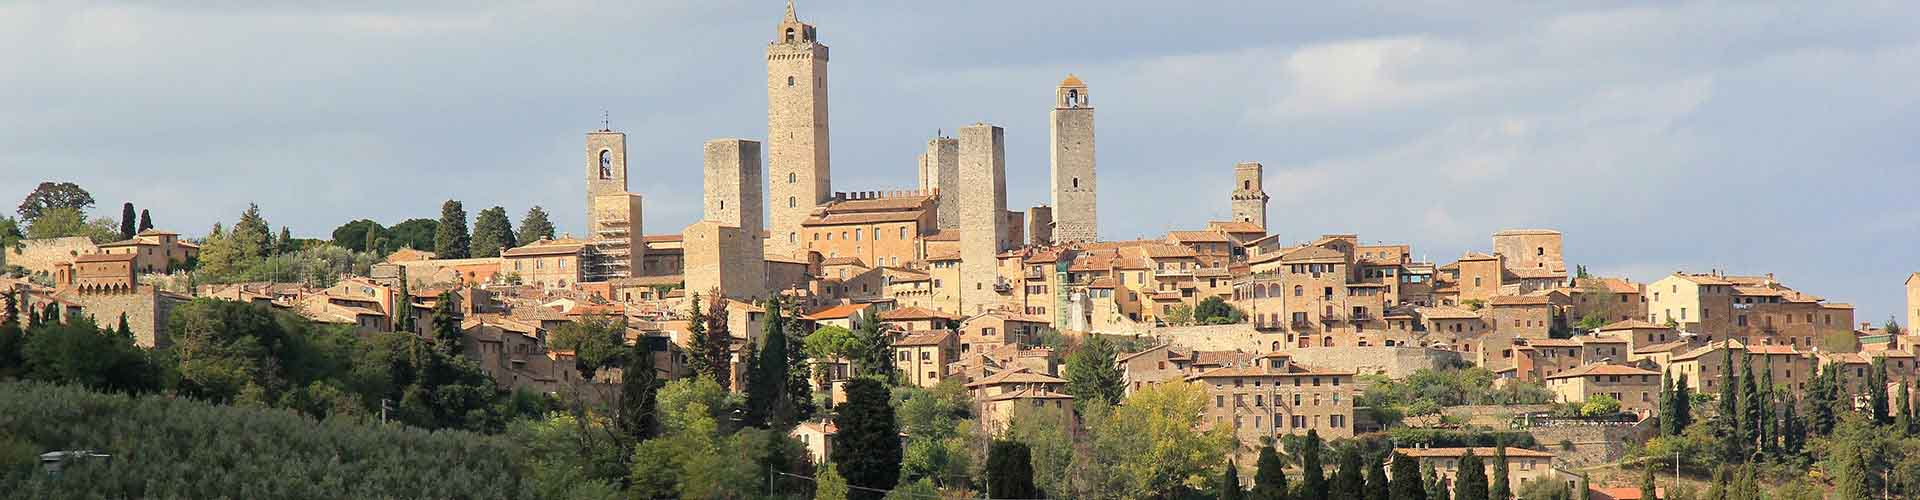 San Gimignano – Hostels in San Gimignano. Maps for San Gimignano, Photos and Reviews for each hostel in San Gimignano.